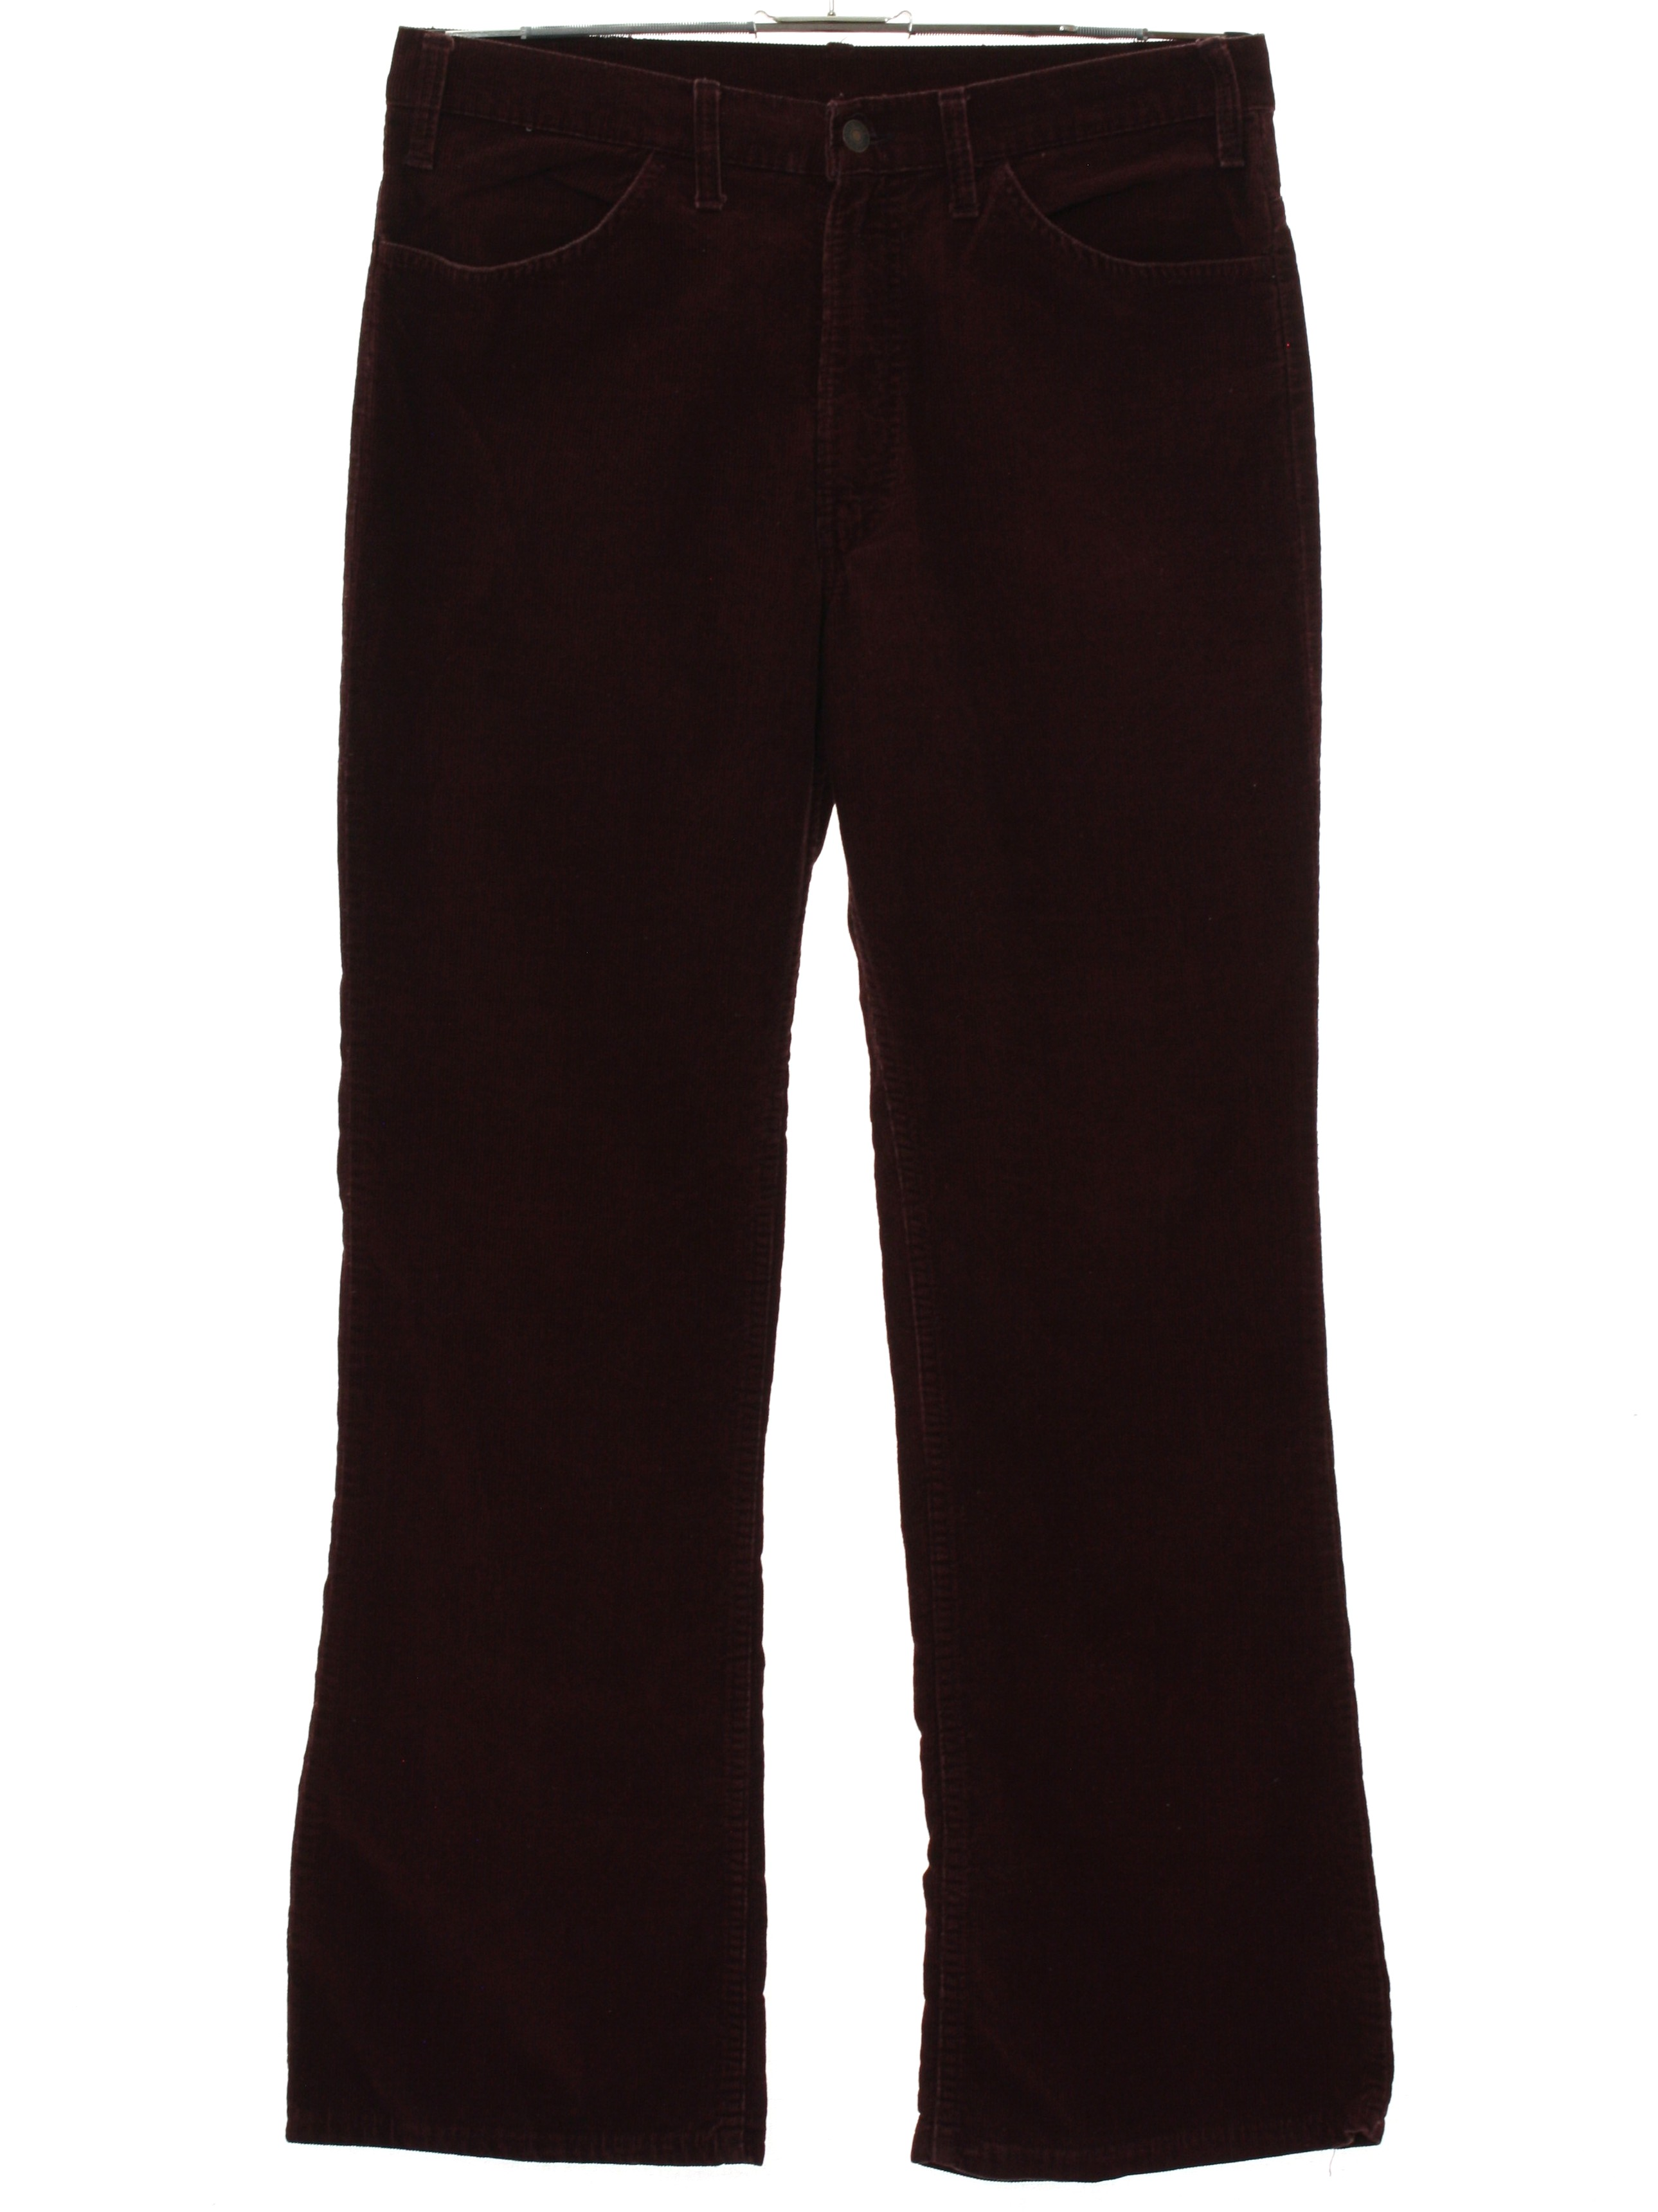 d1fa5dd864a 70s Vintage Levis Bellbottom Pants: 70s -Levis- Mens maroon cotton ...